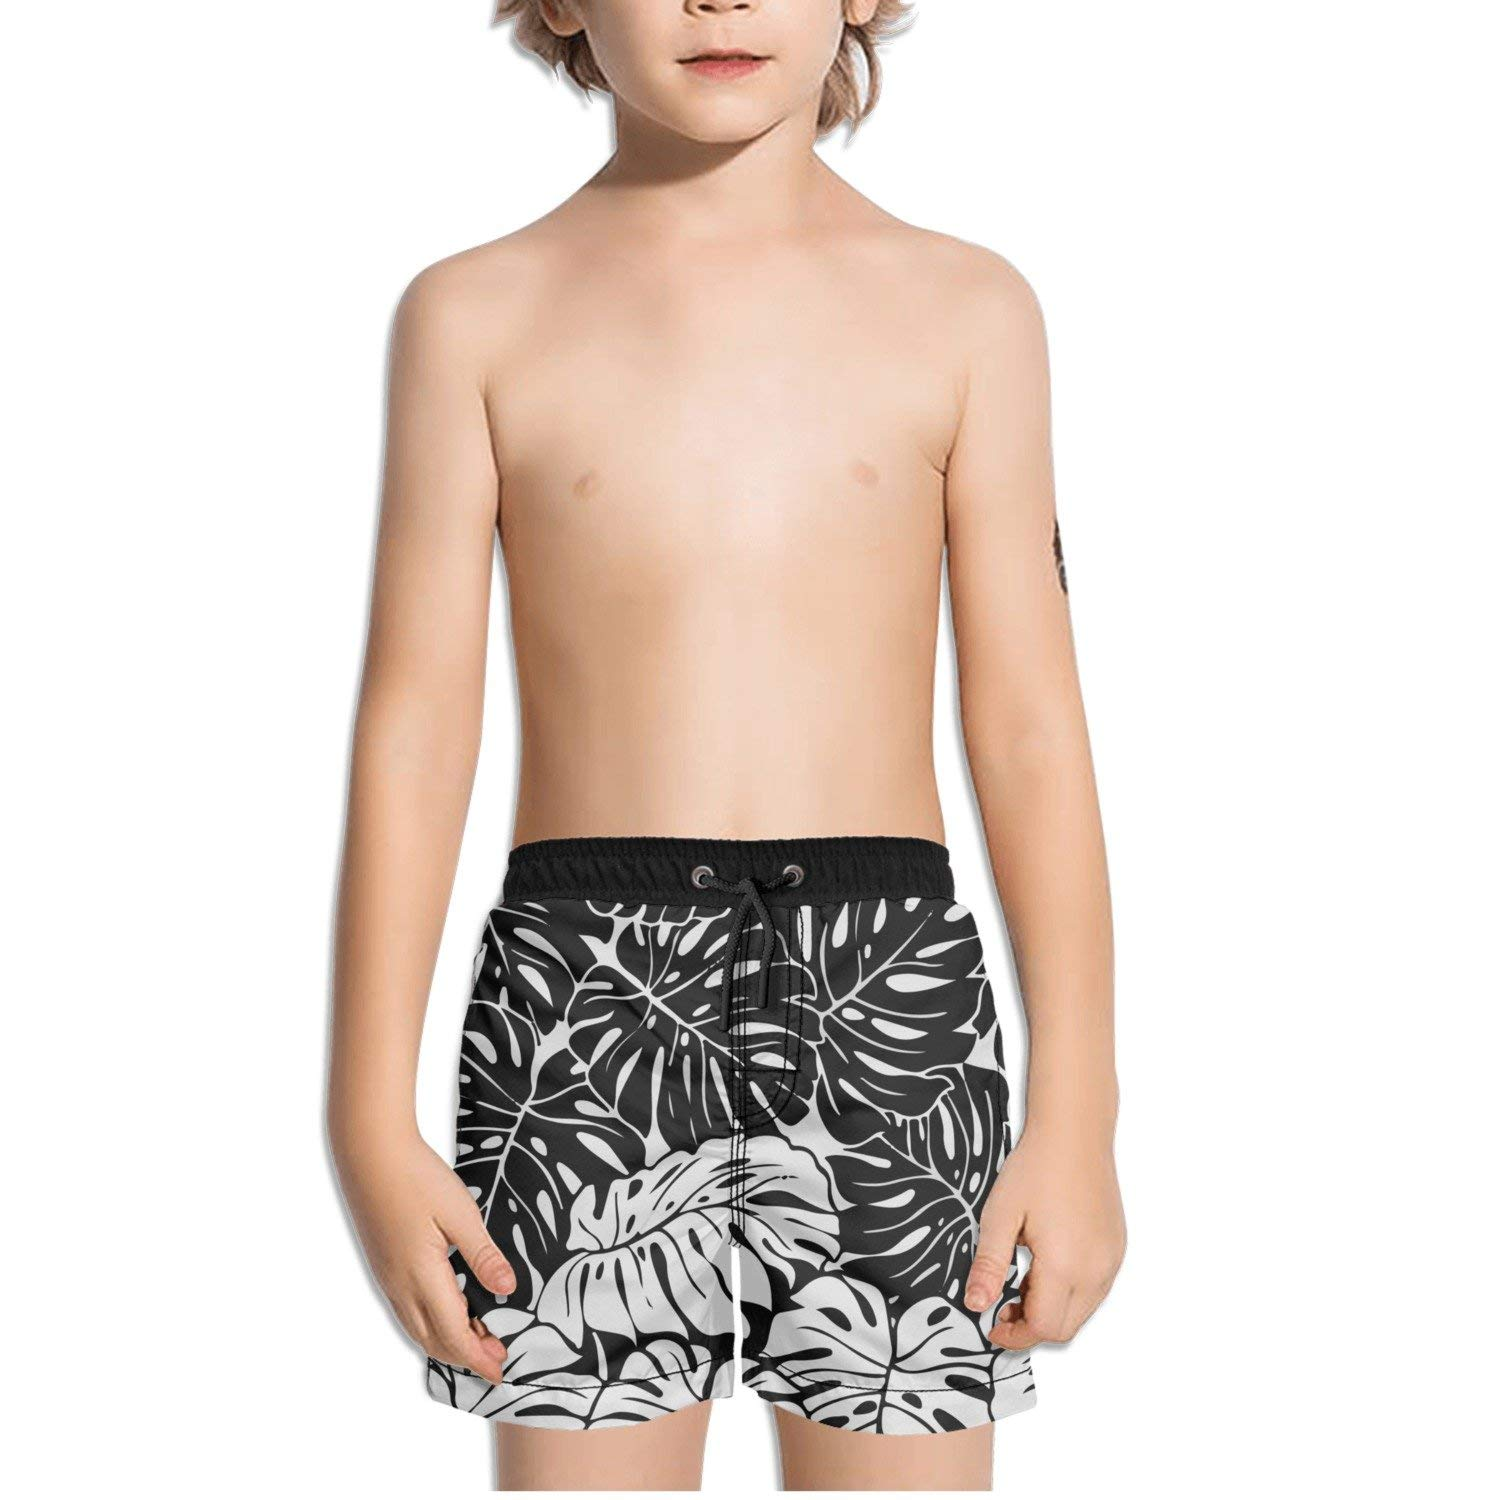 843a5f483d Get Quotations · FullBo Black and Grey Tropical Leaf Little Boy's Short  Swim Trunks Quick Dry Beach Shorts